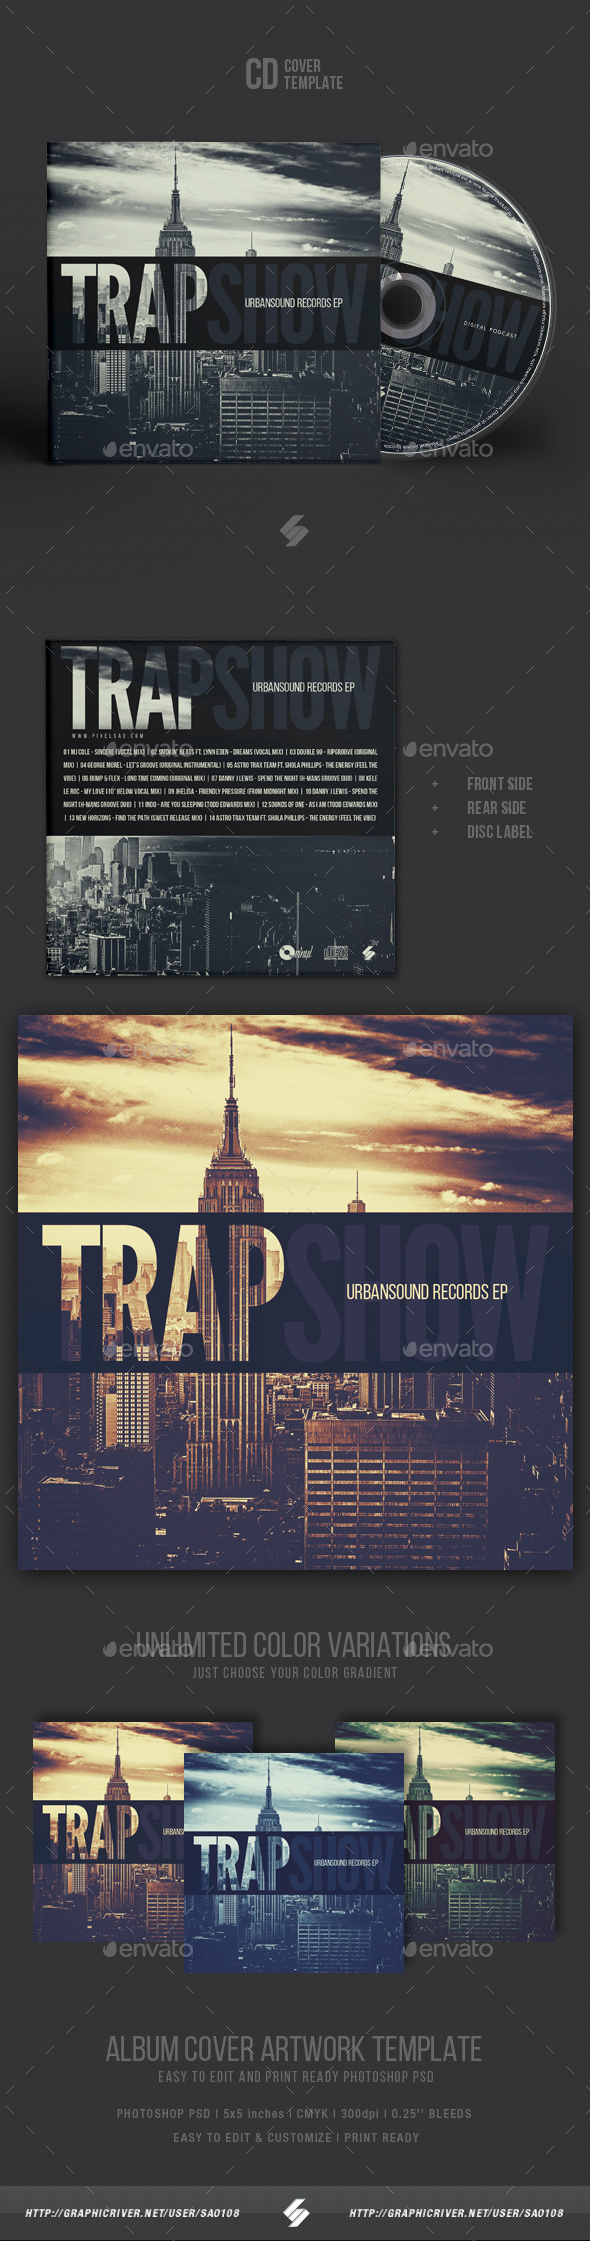 Trap Show - CD Cover Artwork Template - CD & DVD Artwork Print Templates